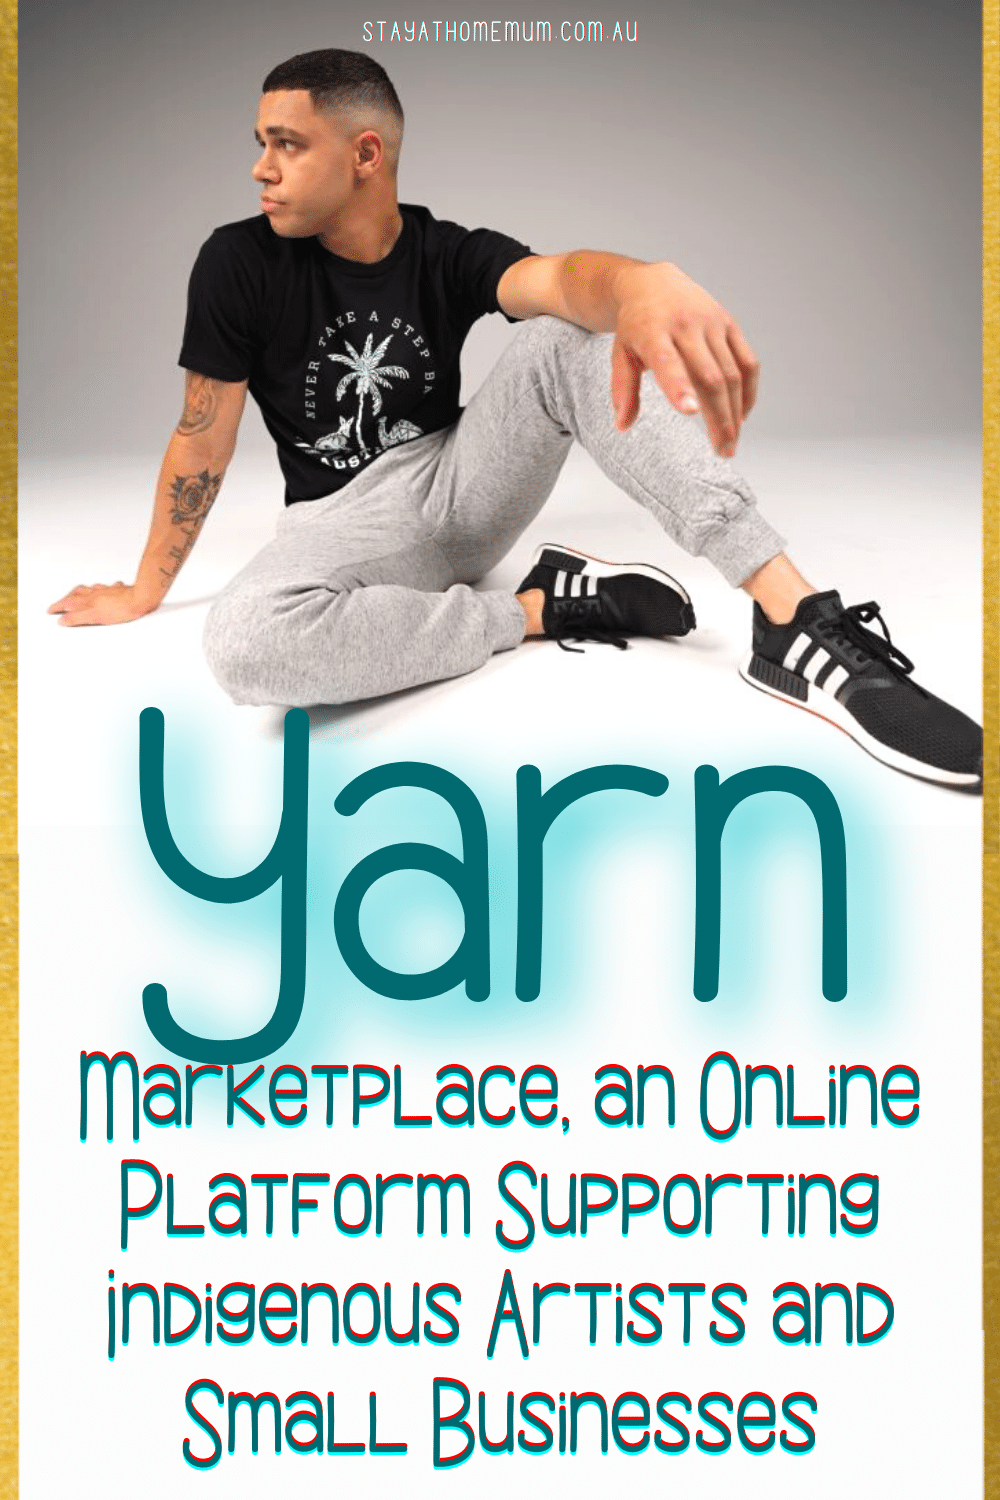 Yarn Marketplace an Online Platform Supporting Indigenous Artists and Small Businesses | Stay at Home Mum.com.au